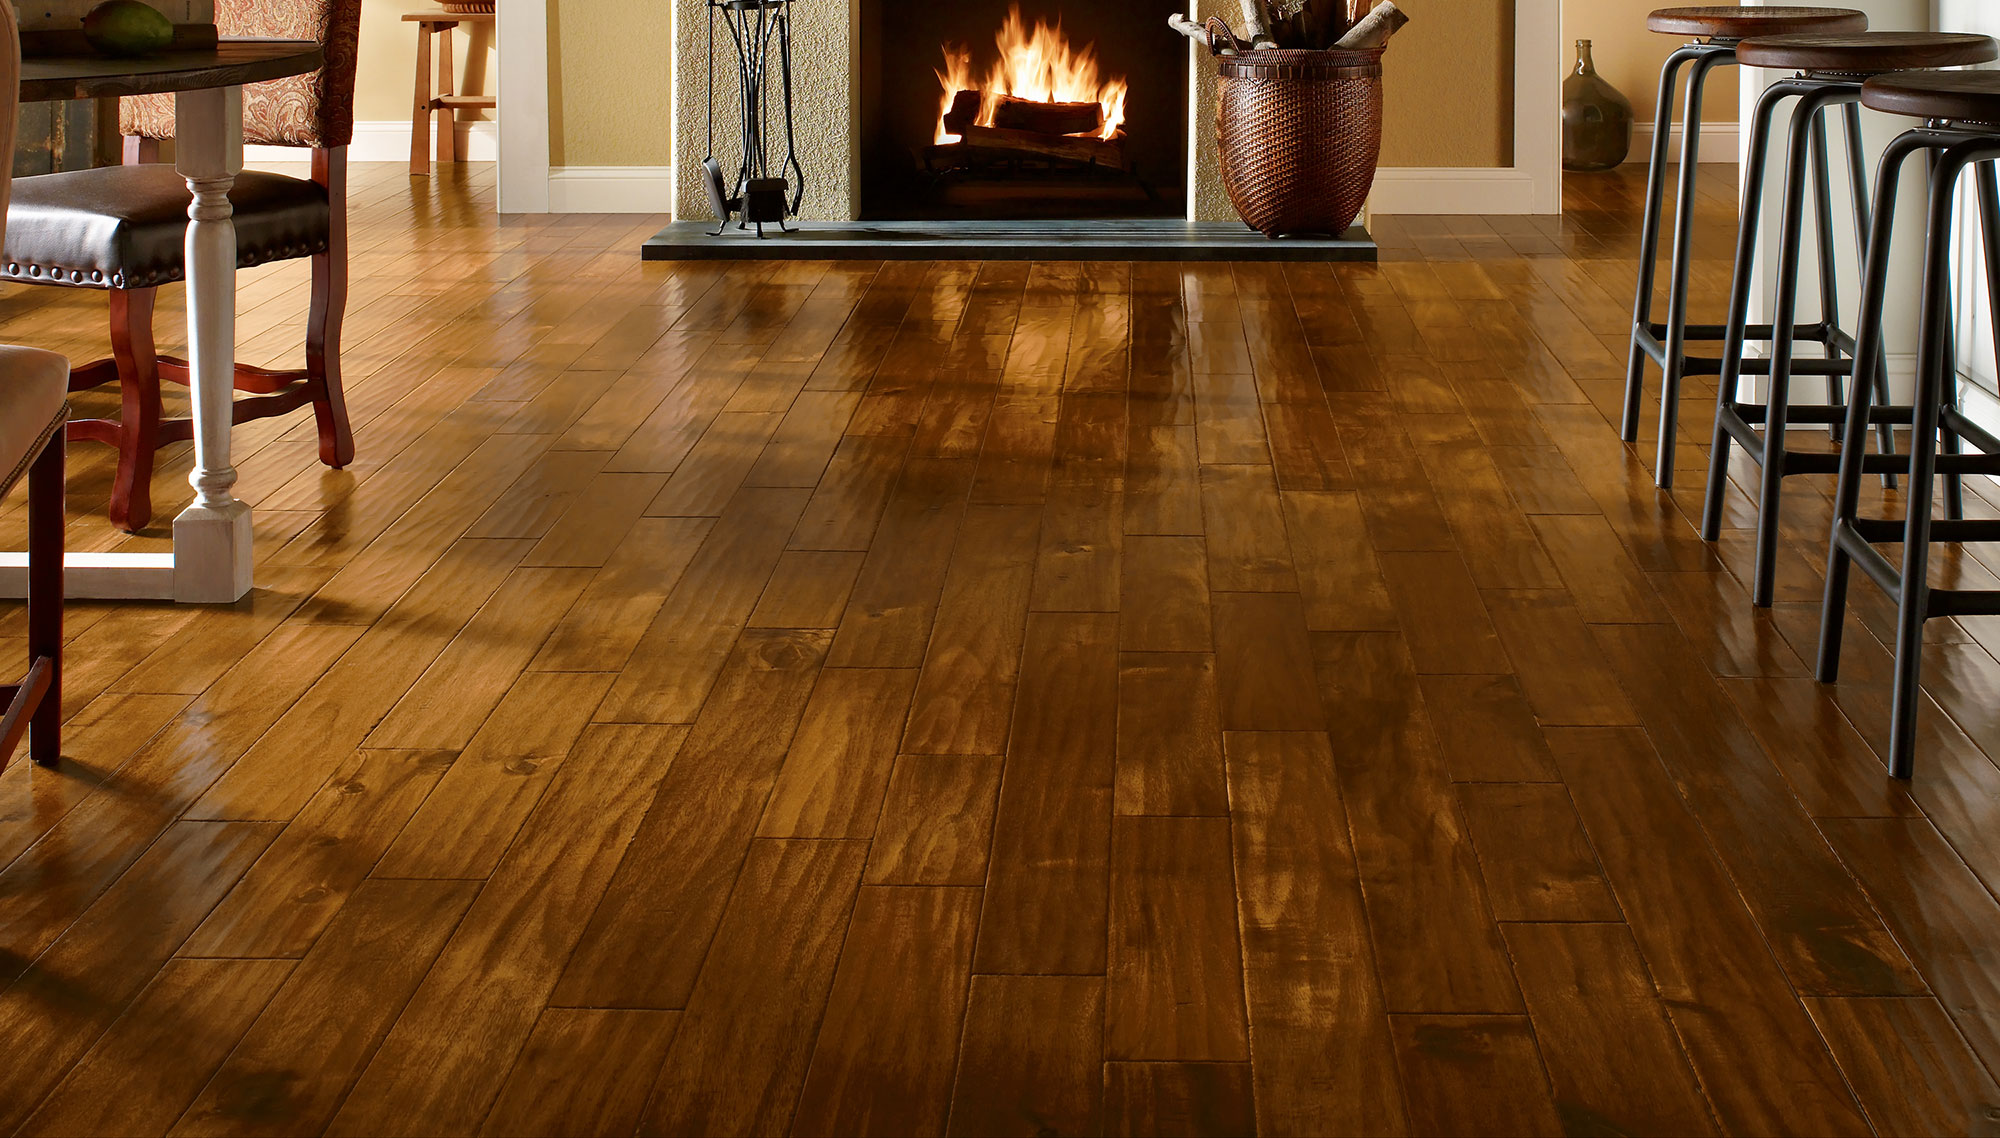 Remolding the floors with wooden flooring